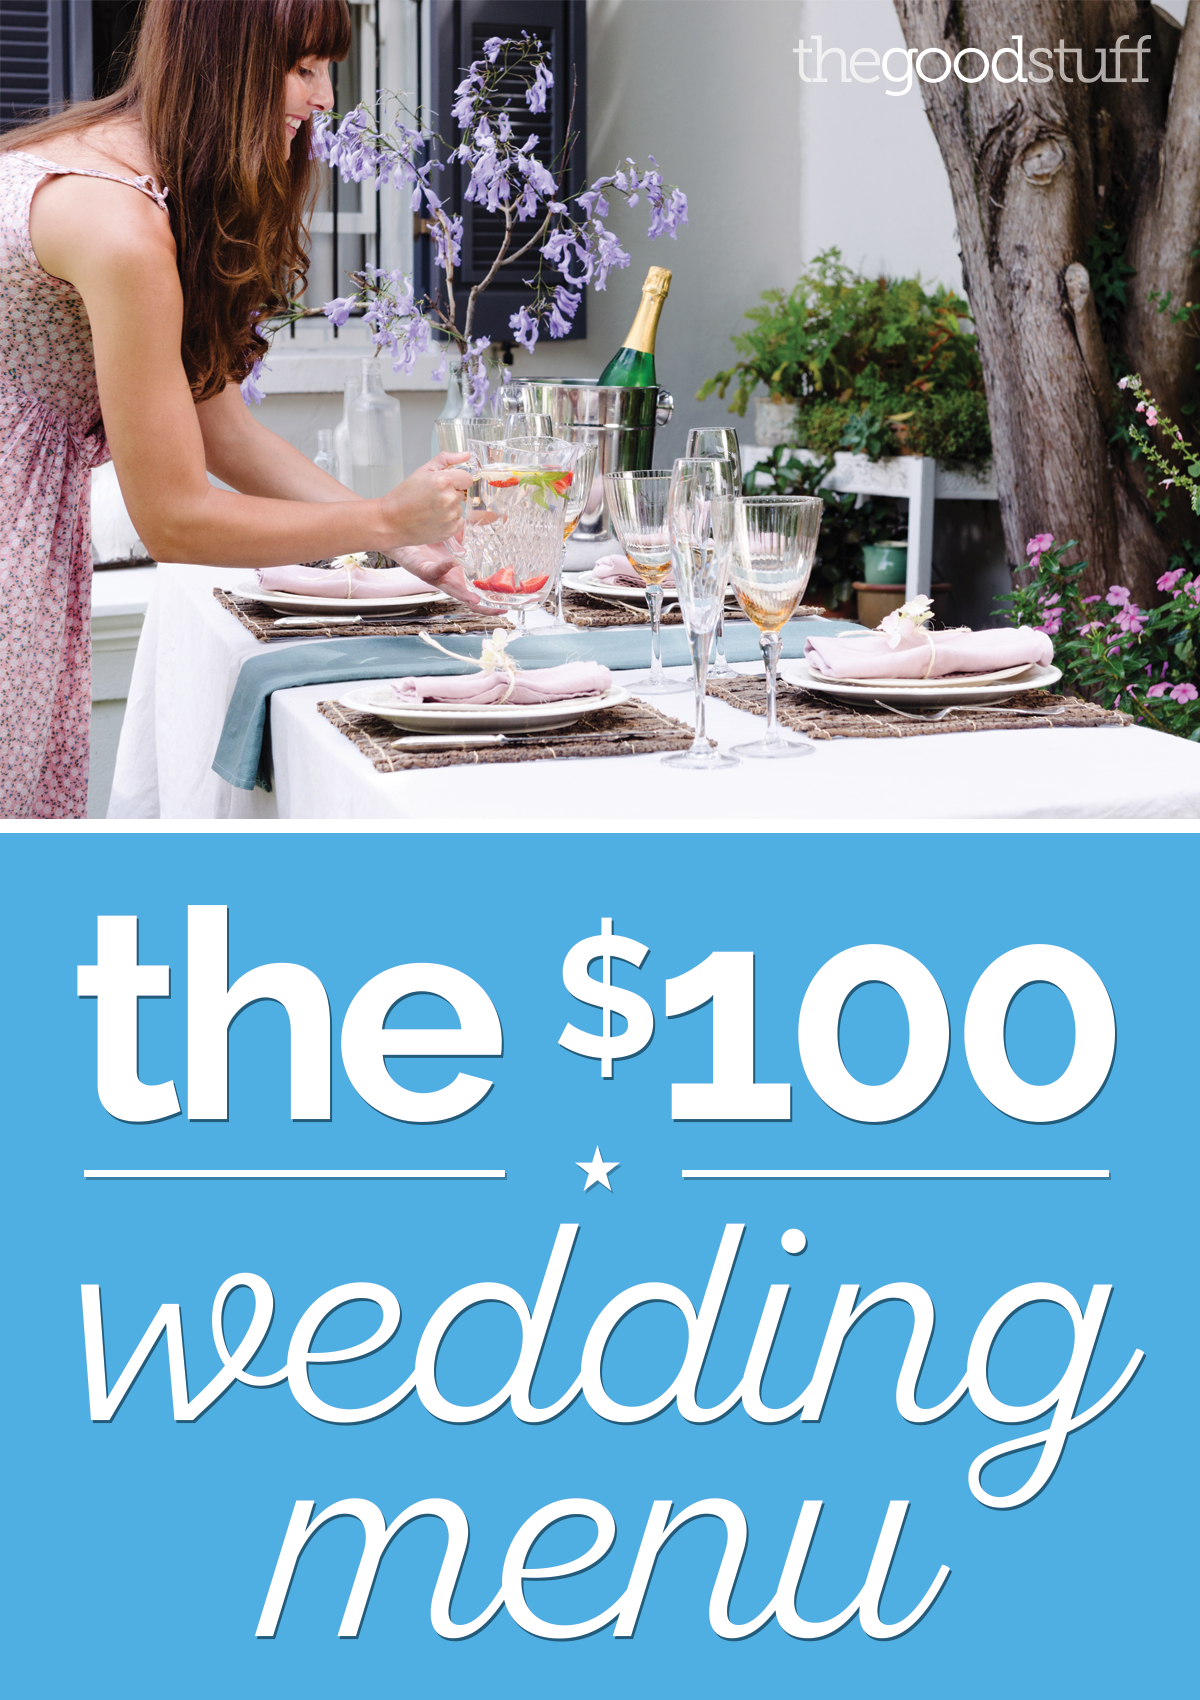 A DIY Wedding Menu for Just 100 Diy wedding menu